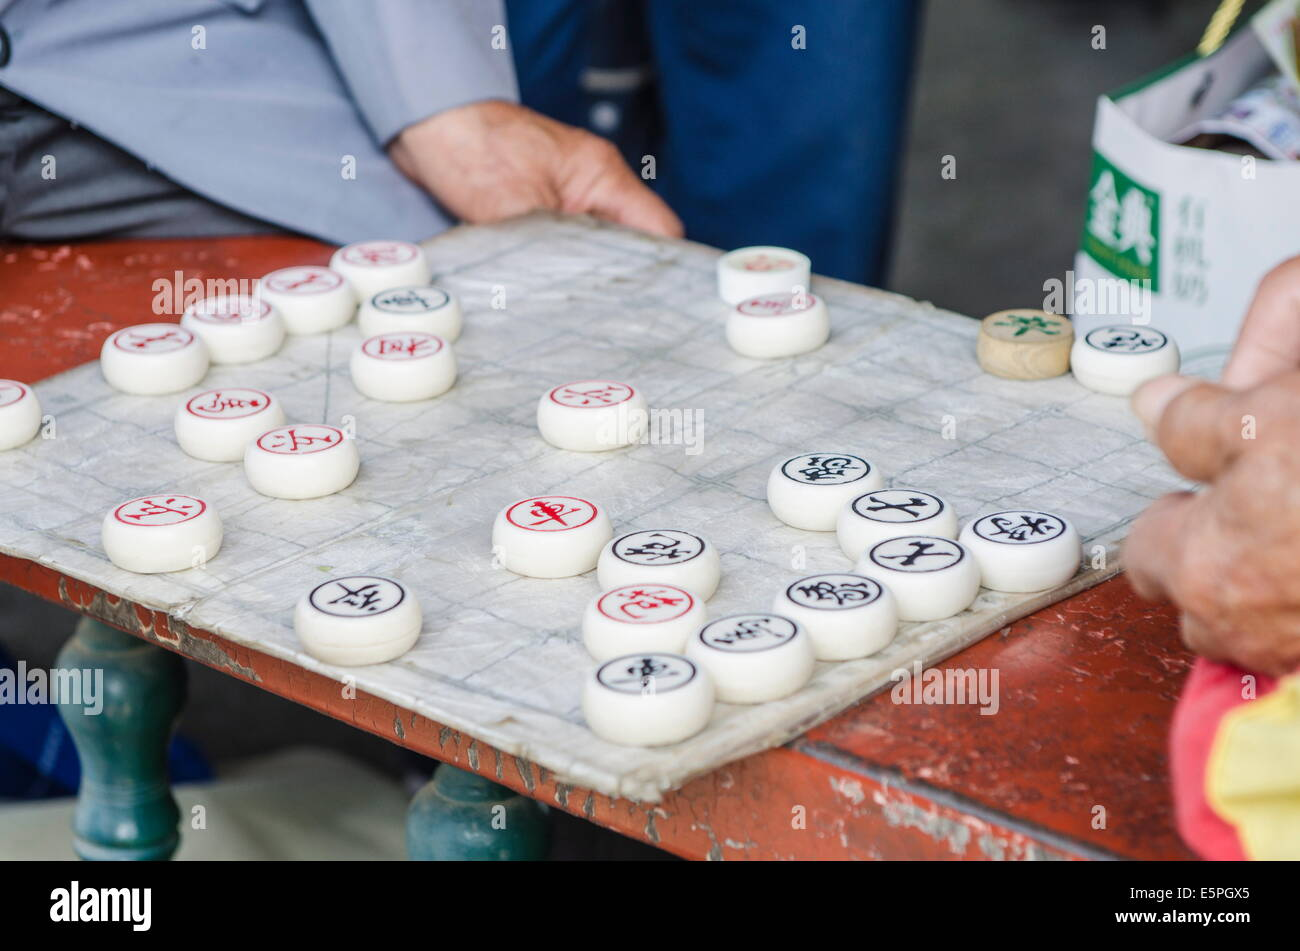 Playing xiangqi (Chinese chess) at the Temple of Heaven (Altar of Heaven), Beijing, China, Asia - Stock Image